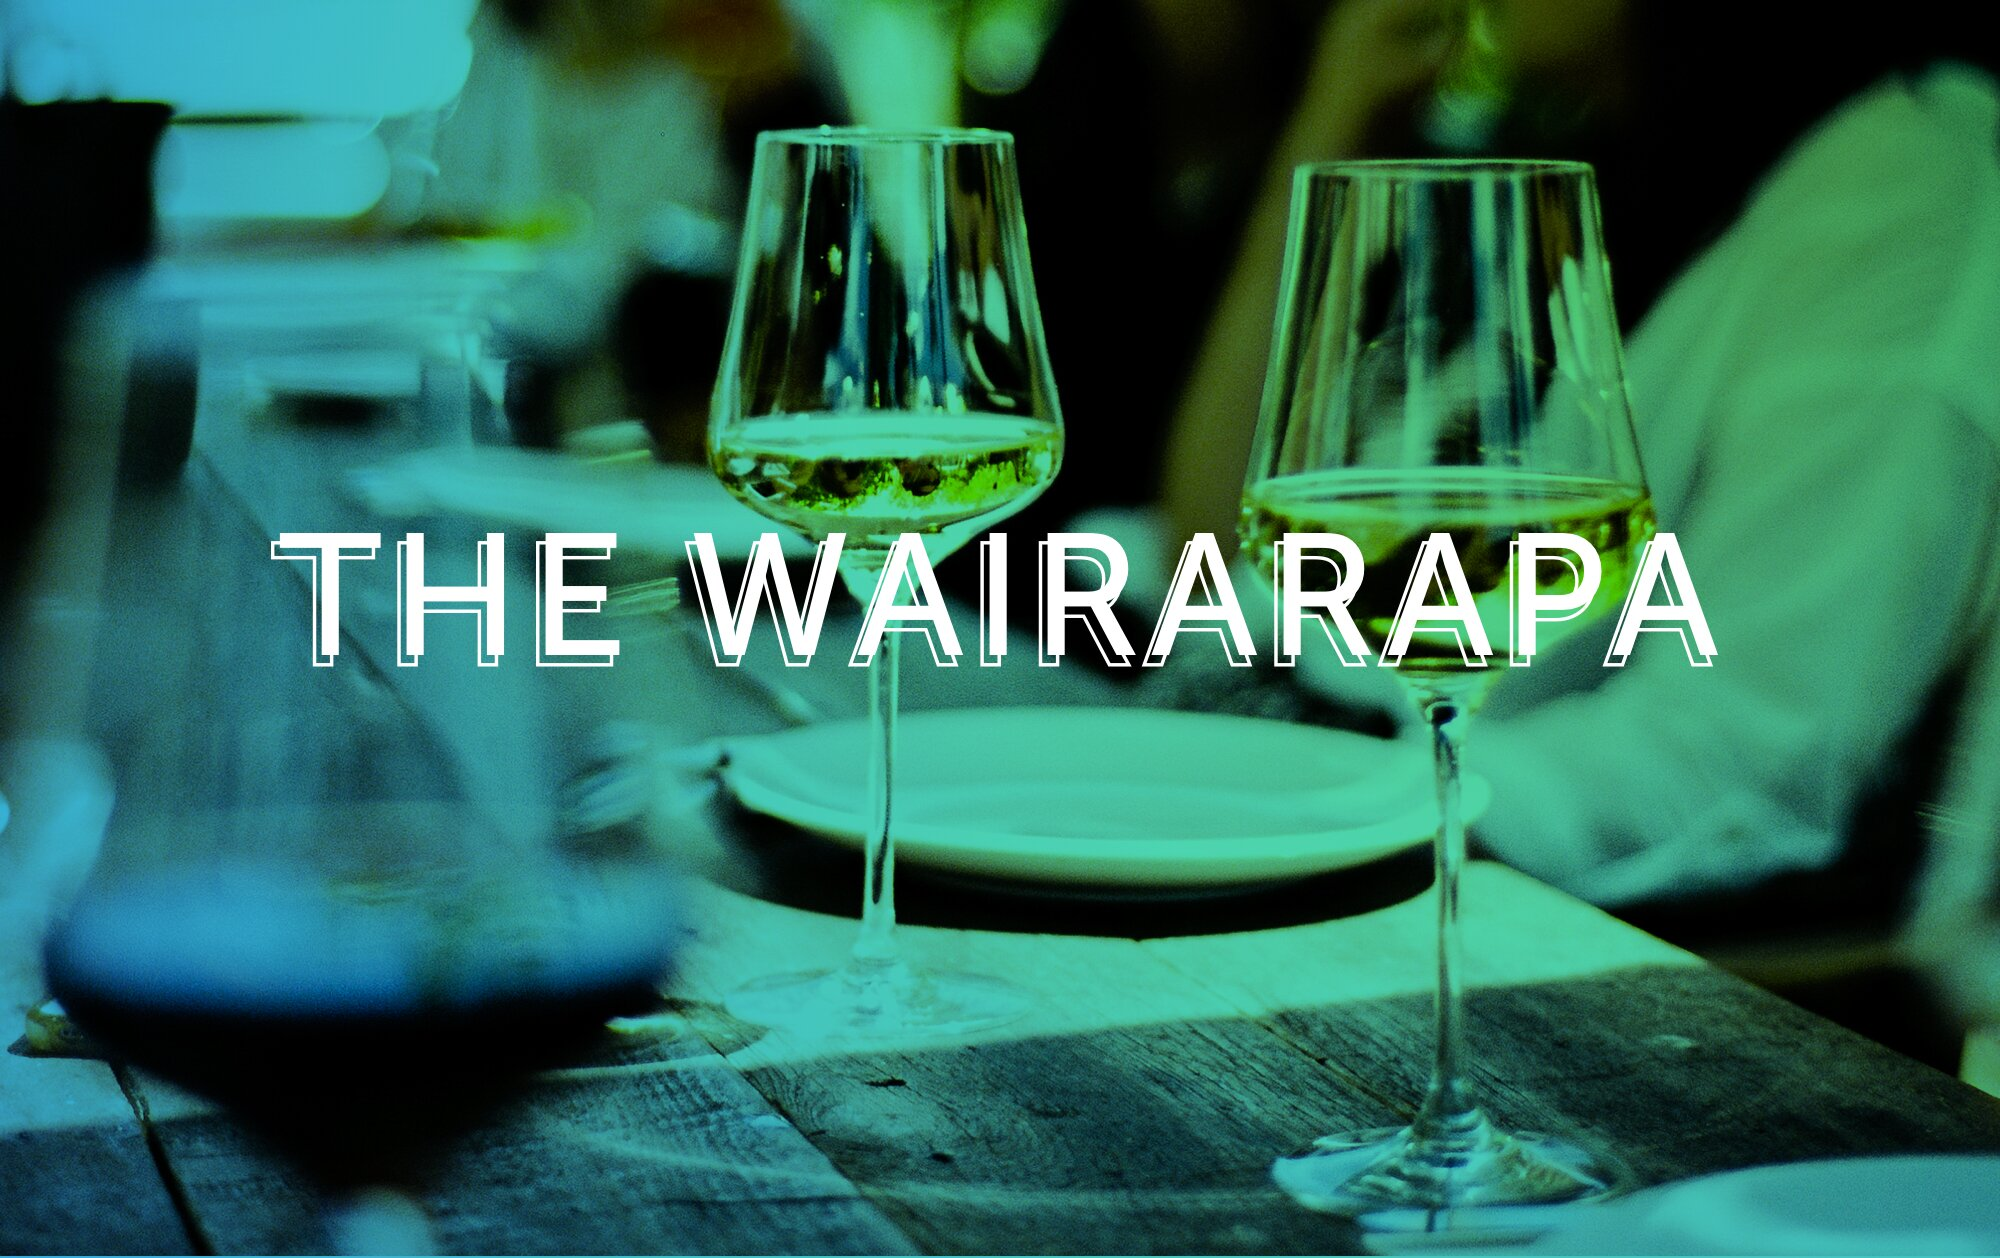 The Wairarapa